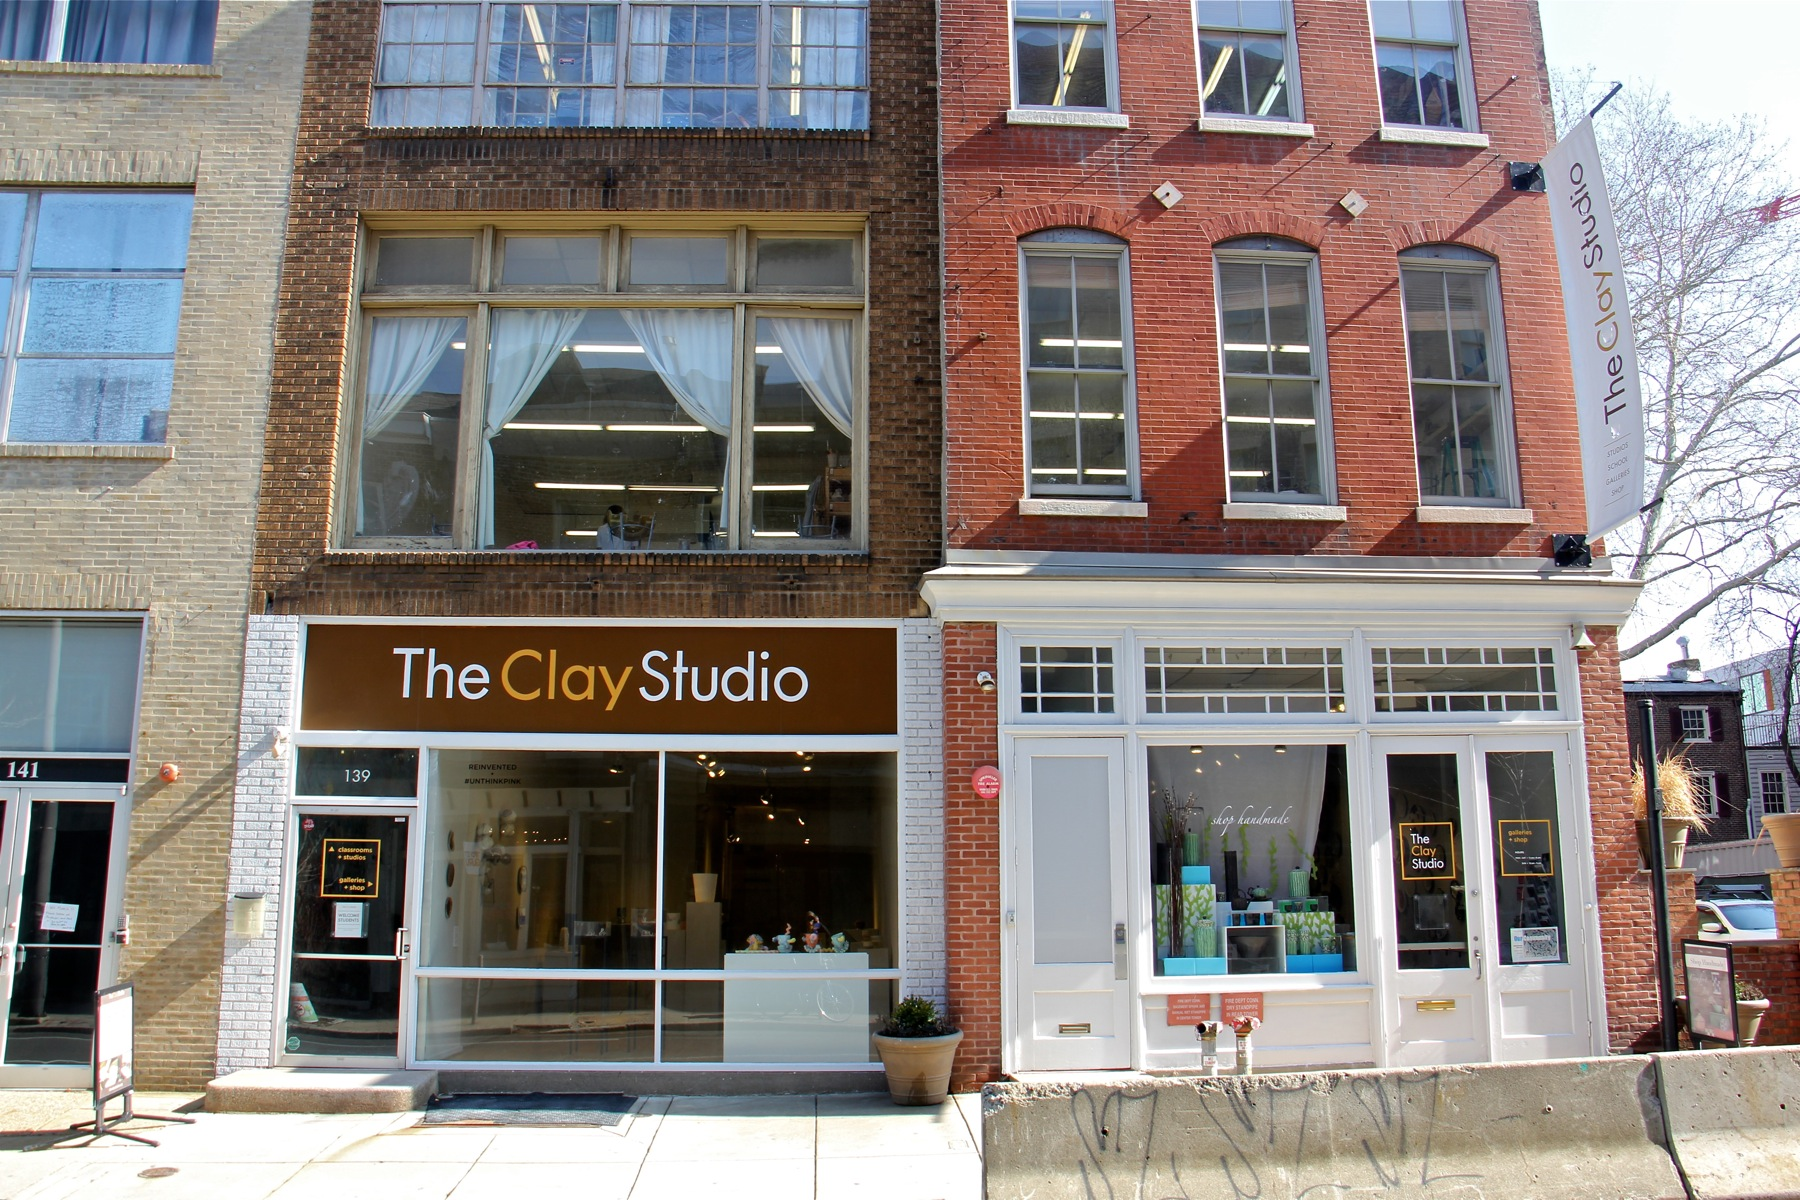 The Clay Studio currently occupies a couple of storefronts on Second Street in Old City.